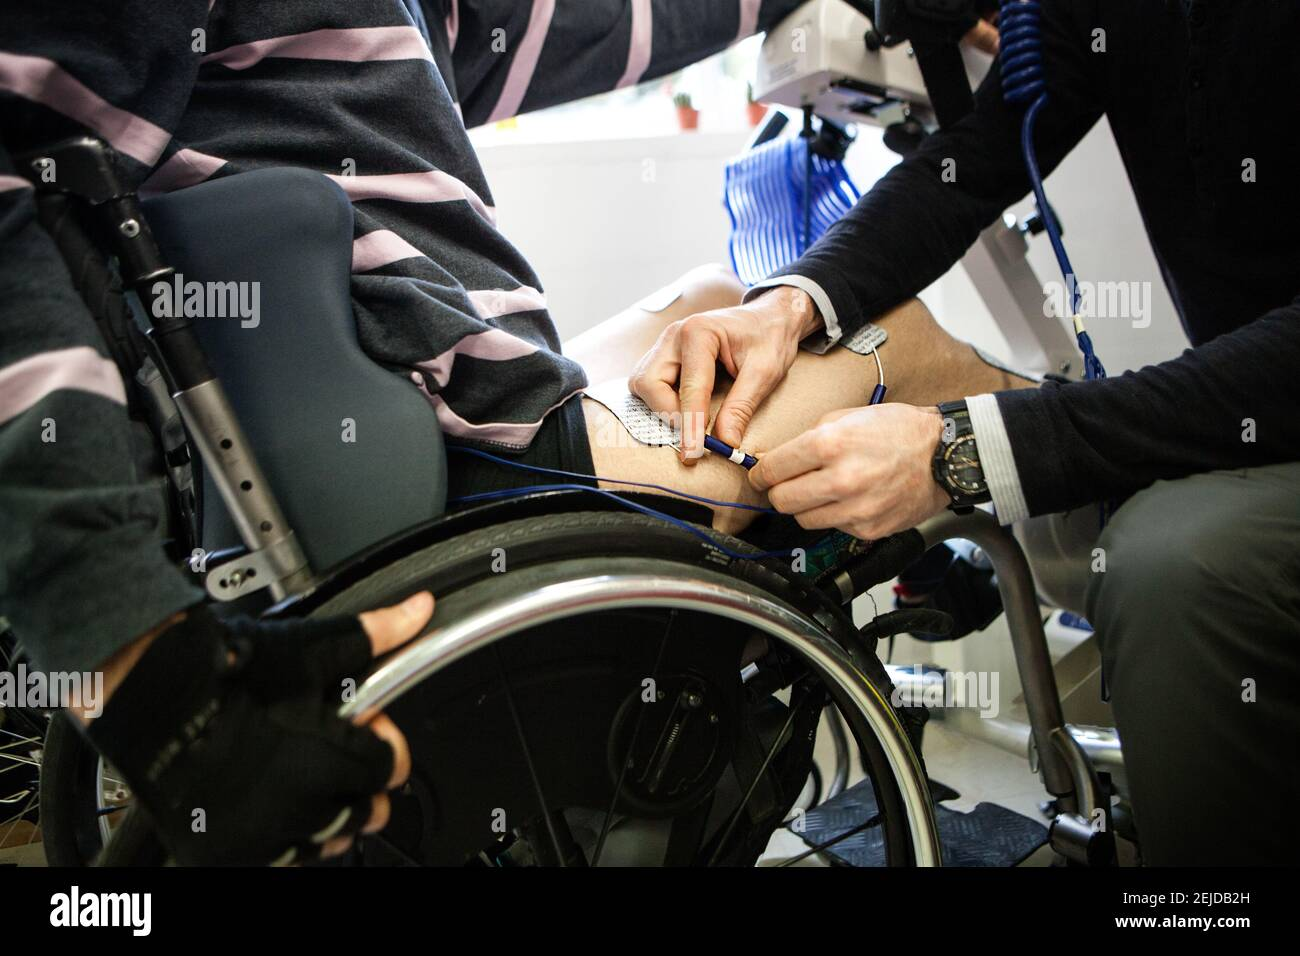 Competition of athletes equipped with bionic devices using electrostimulation and brain-machine interfaces. Stock Photo